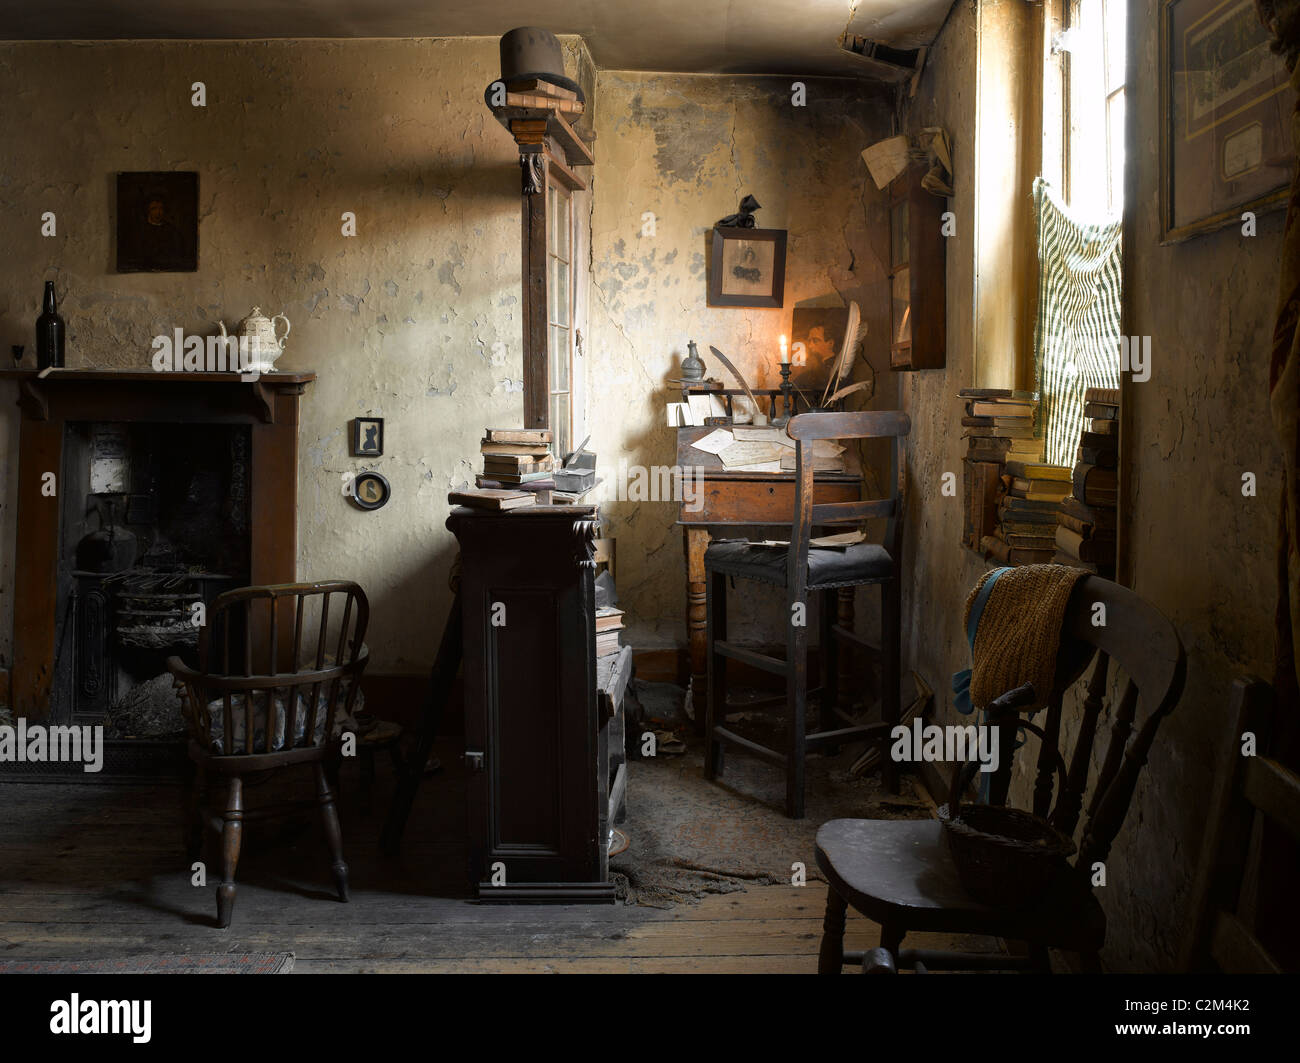 Dennis severs house spitalfields london interior of for 18th century farmhouse interiors